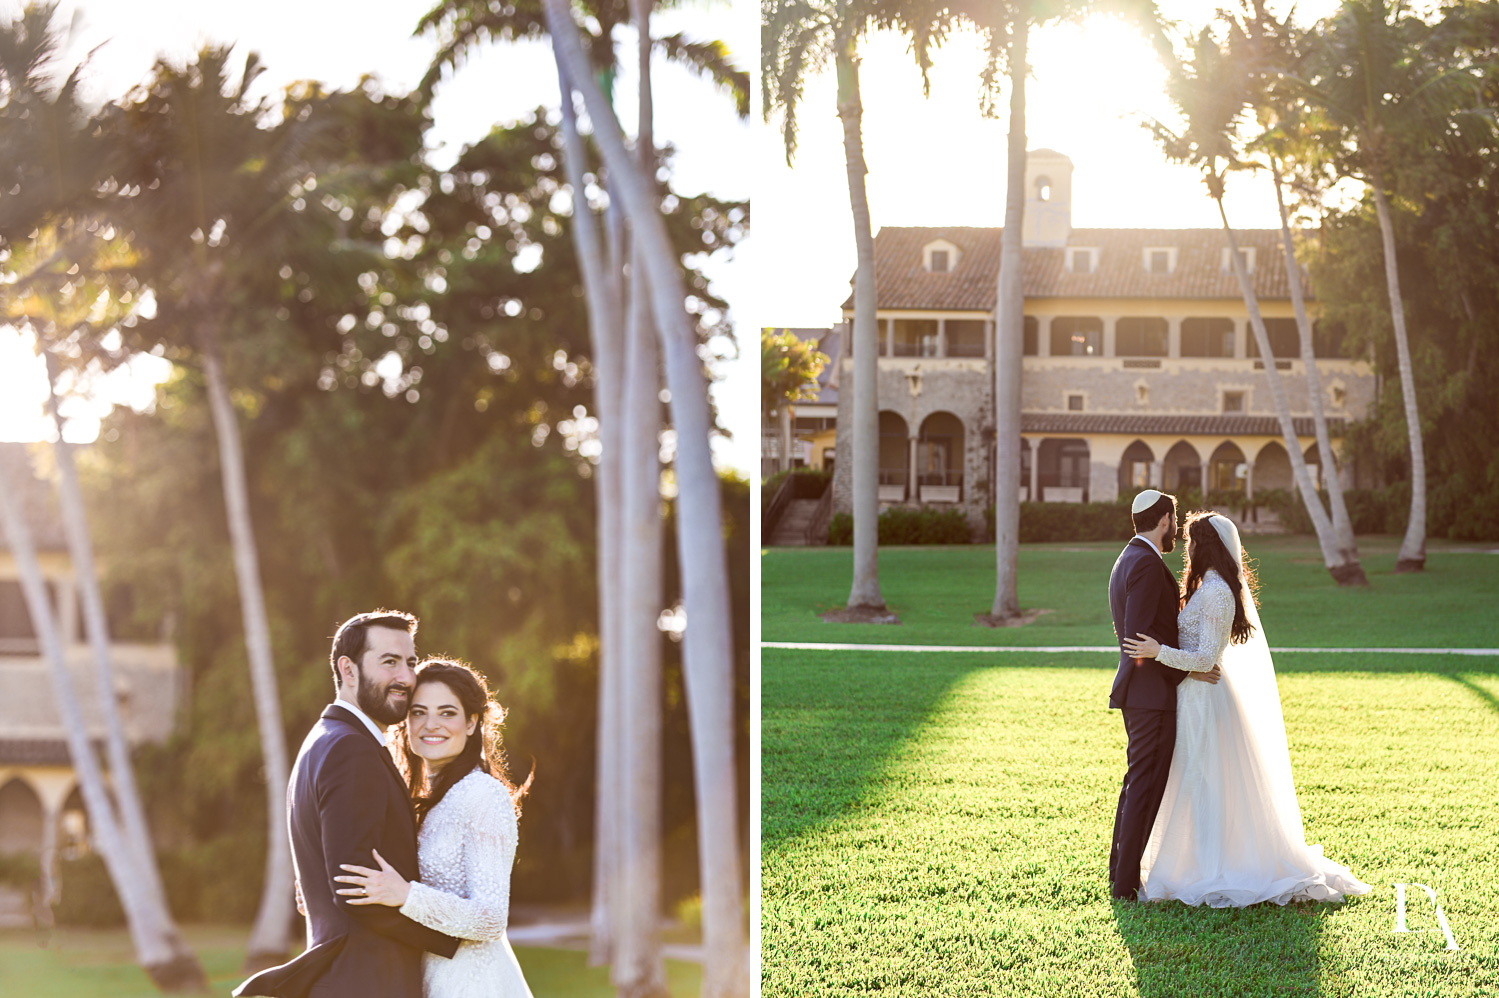 sunset portraits at Traditional Jewish Wedding at Deering Estate Miami by Domino Arts Photography